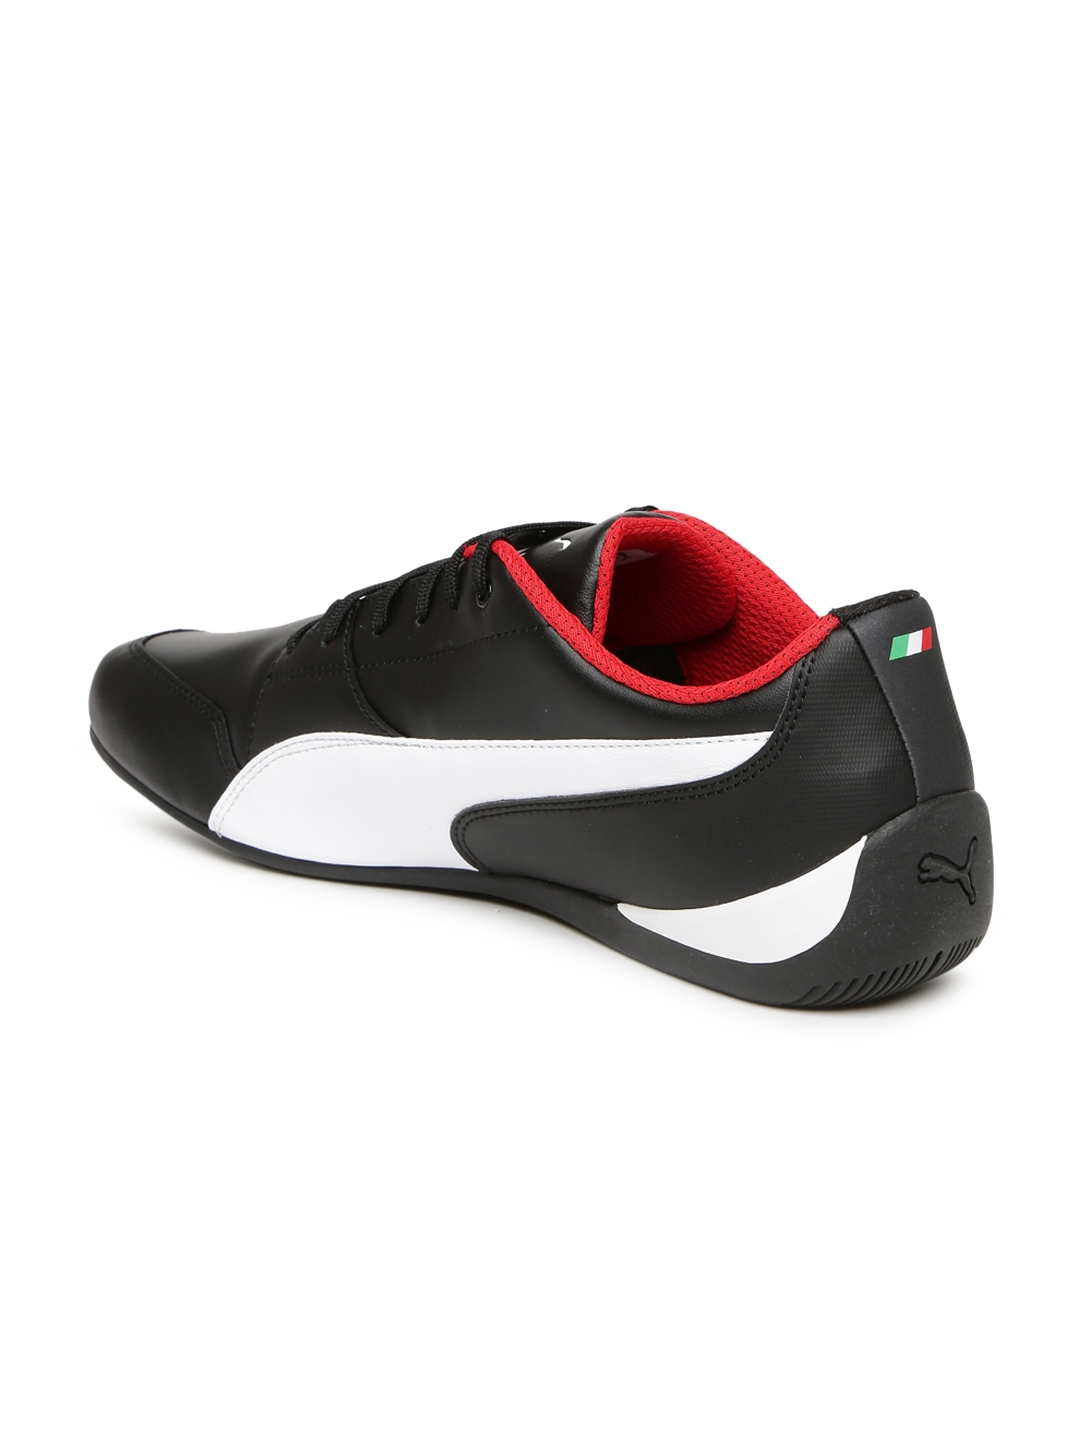 e5c3d15bc4 Buy Puma Unisex Black SF Drift Cat 7 Sneakers - Casual Shoes for ...